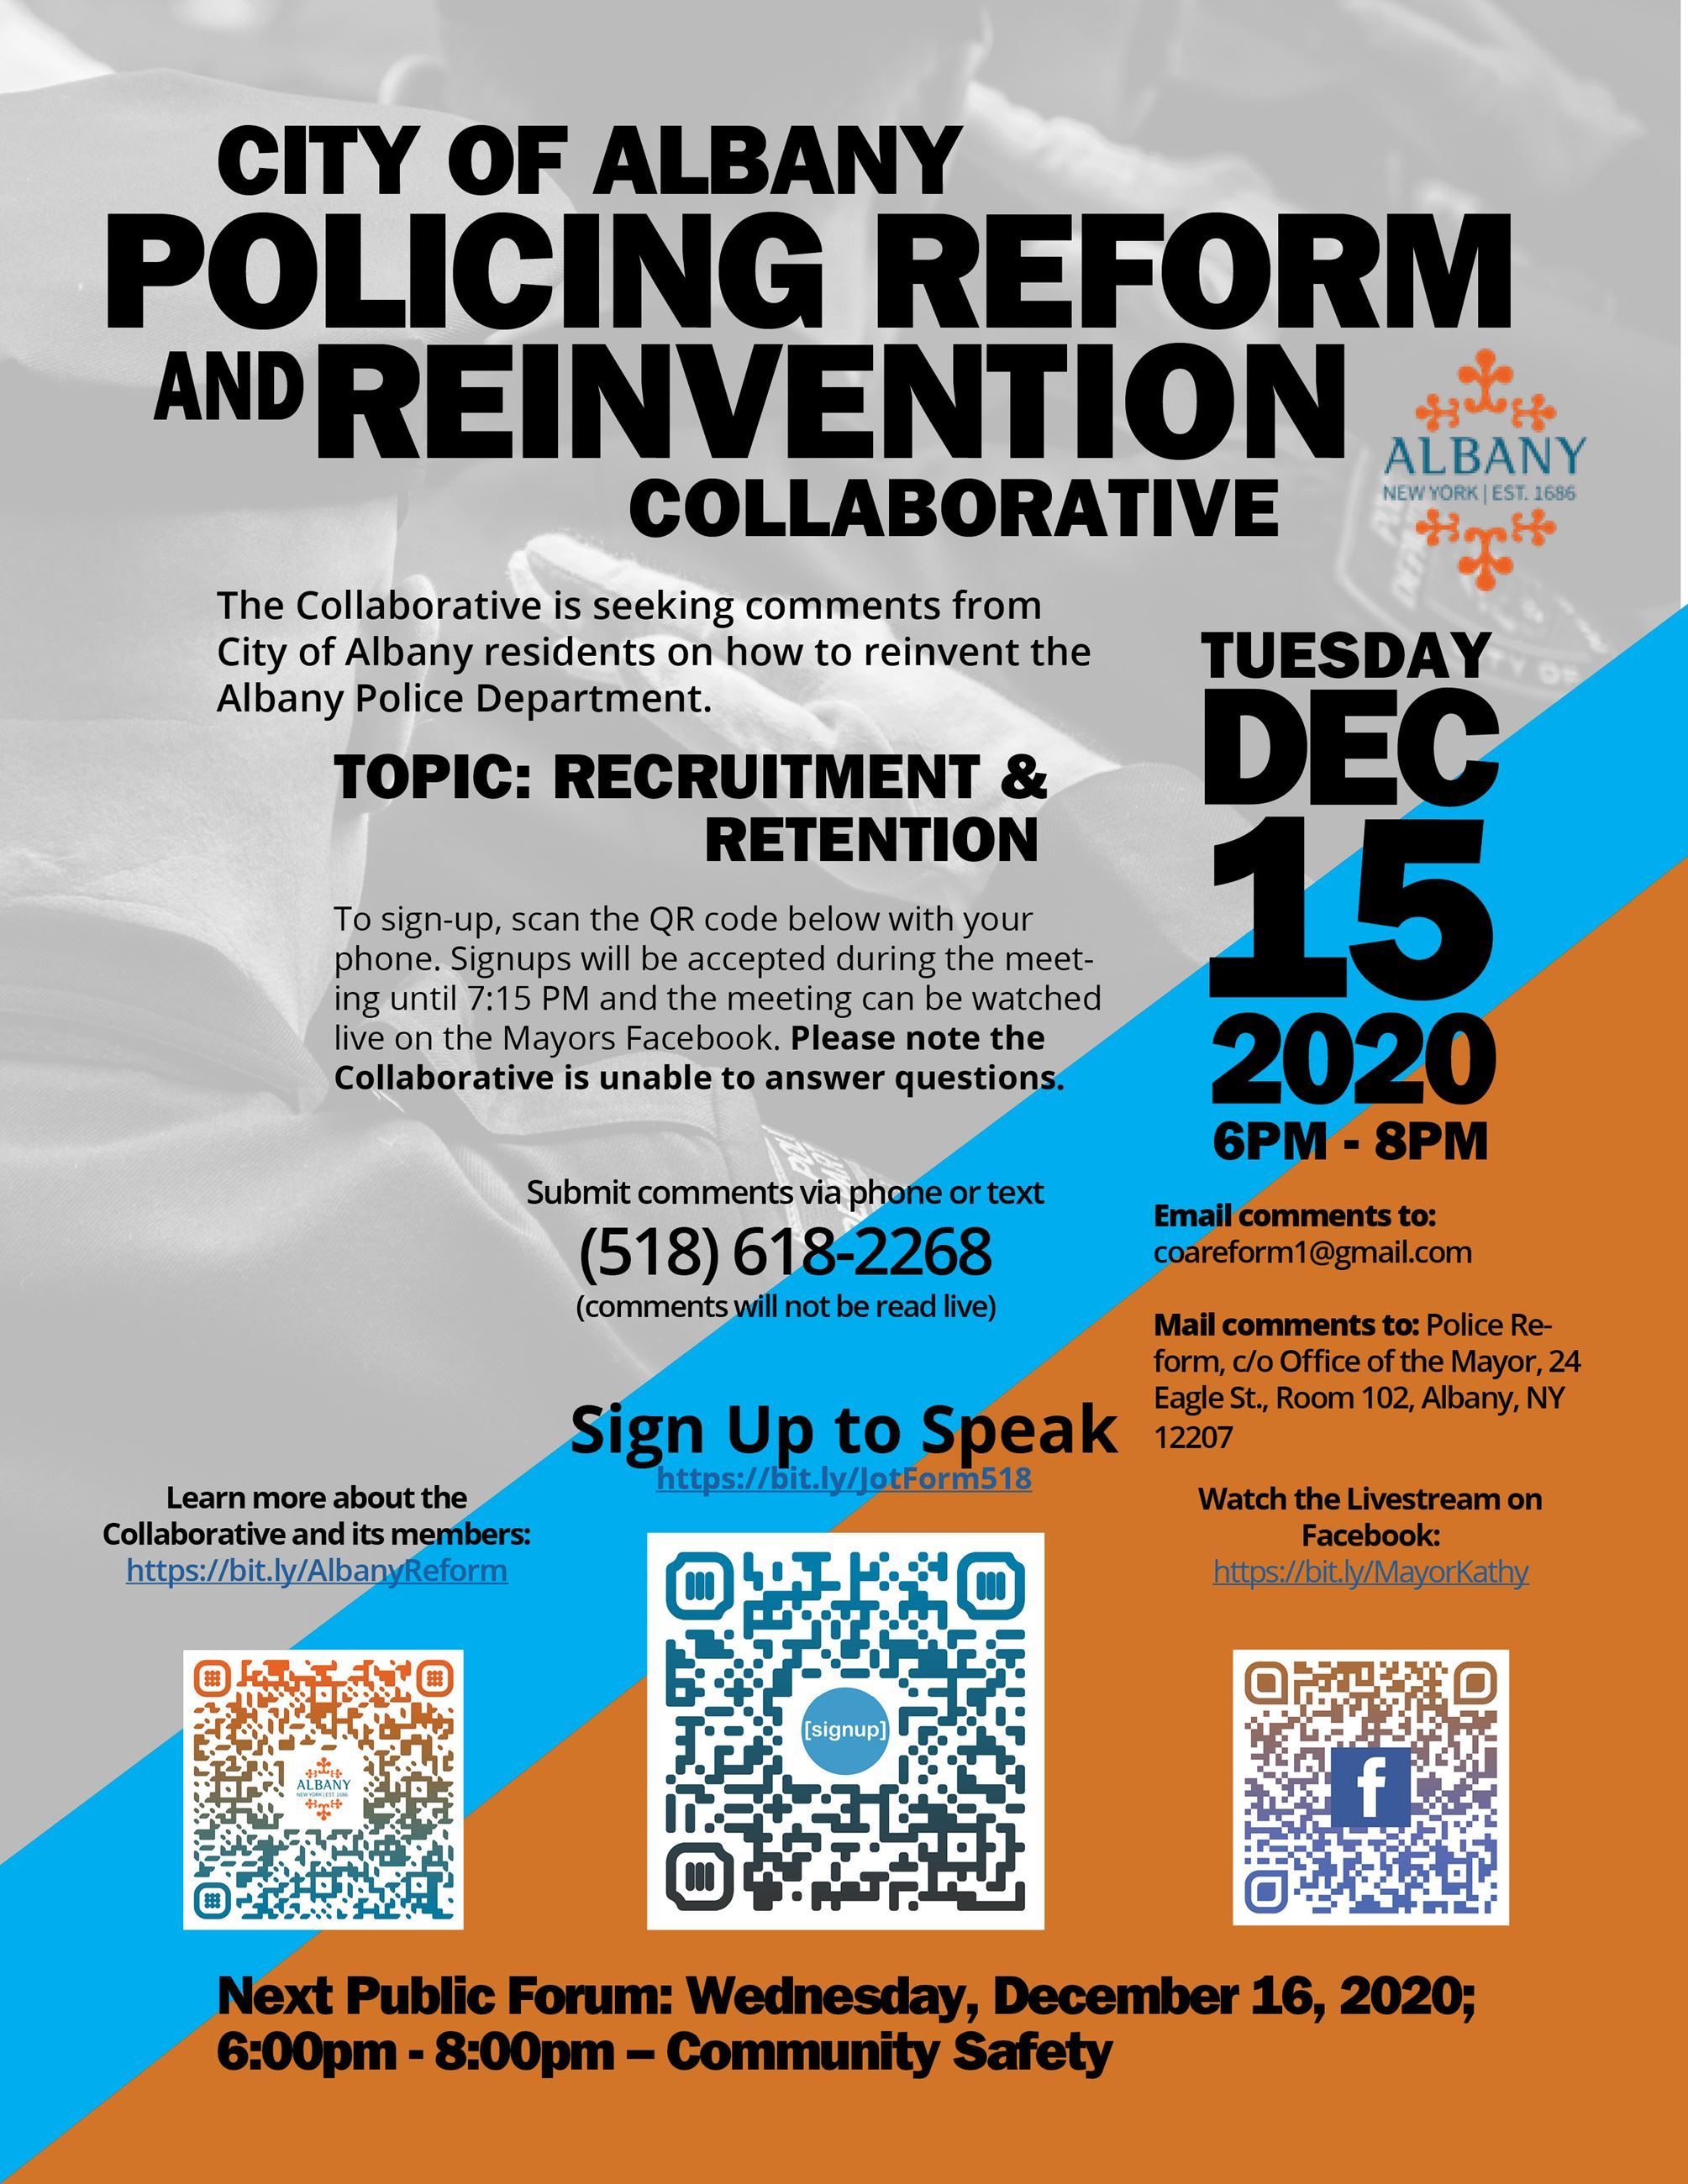 Policing Reform Flyer - Dec 15th